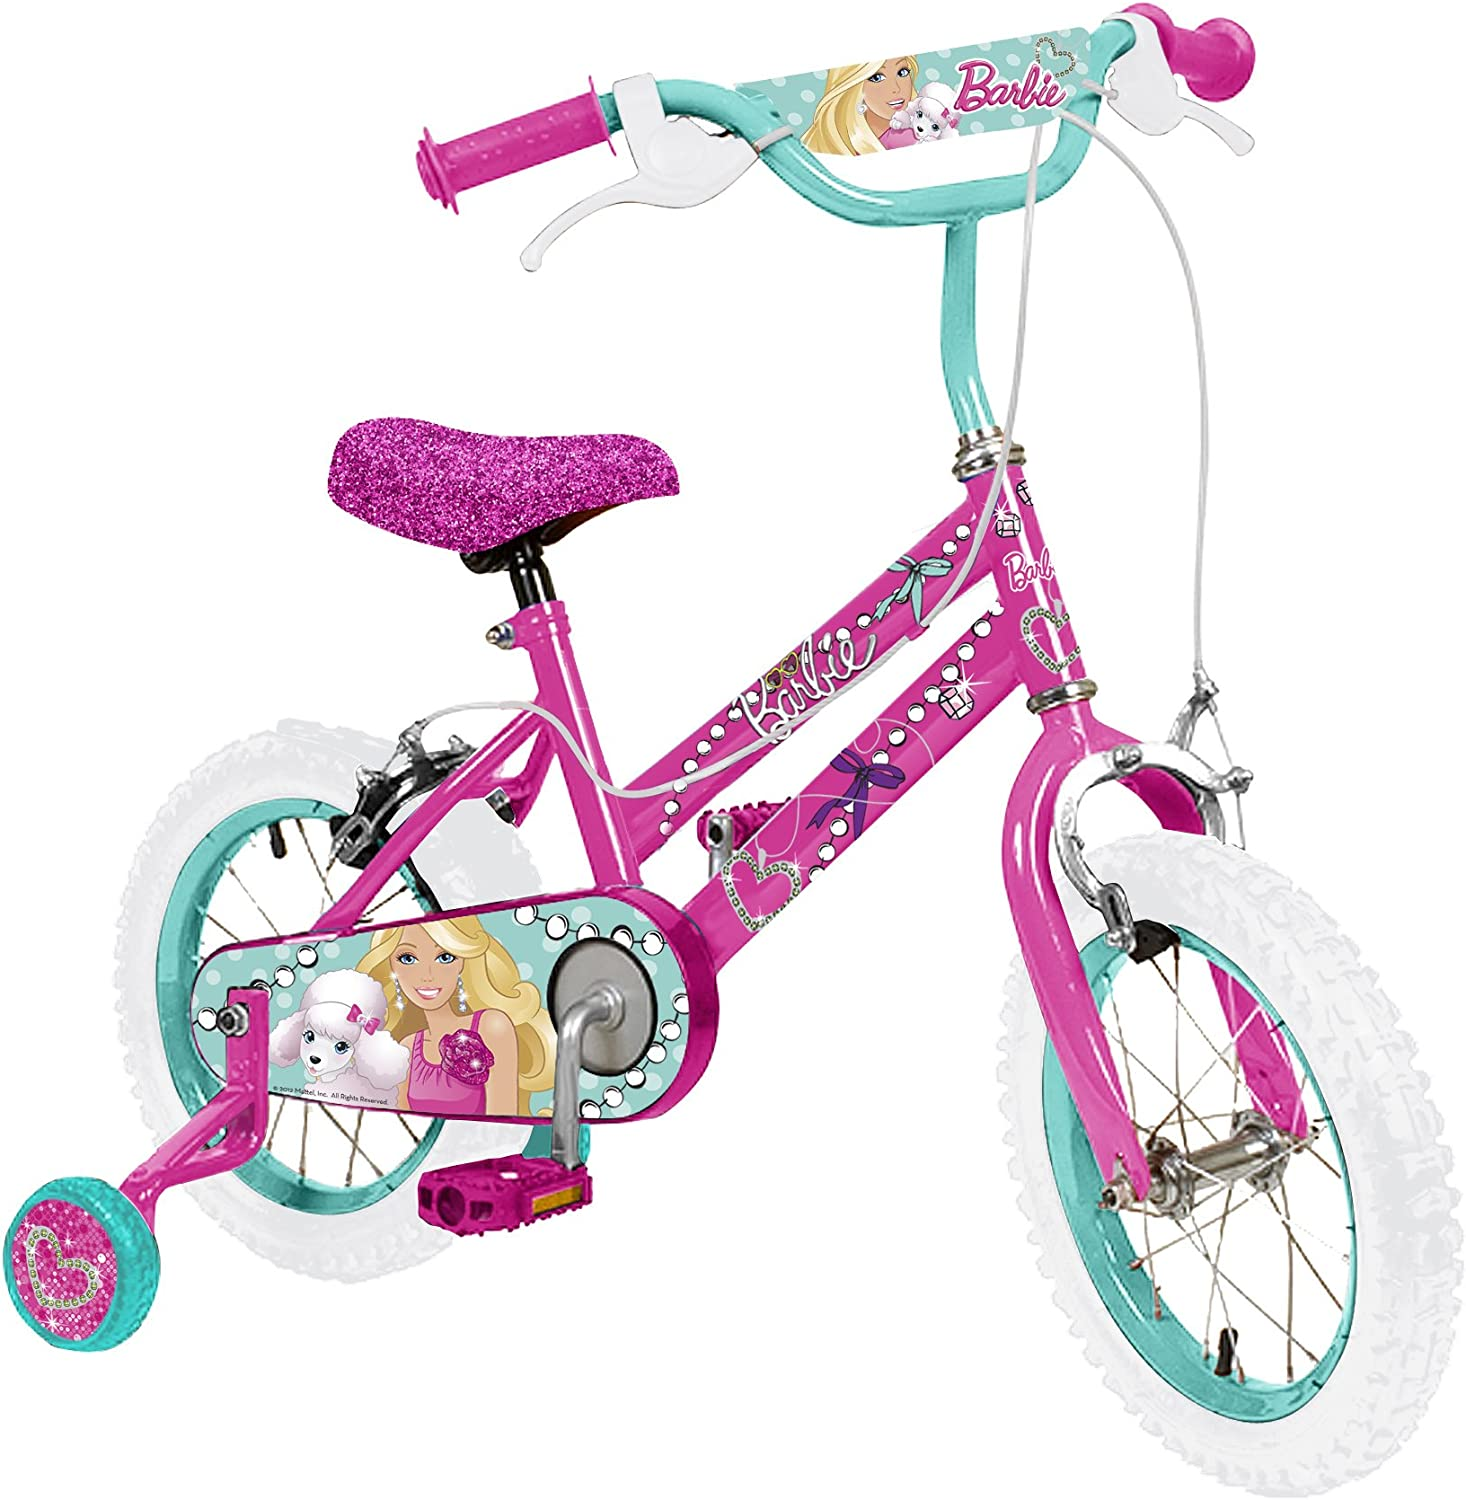 Barbie GirlS Bike - Bicicleta para niña, tamaño 16